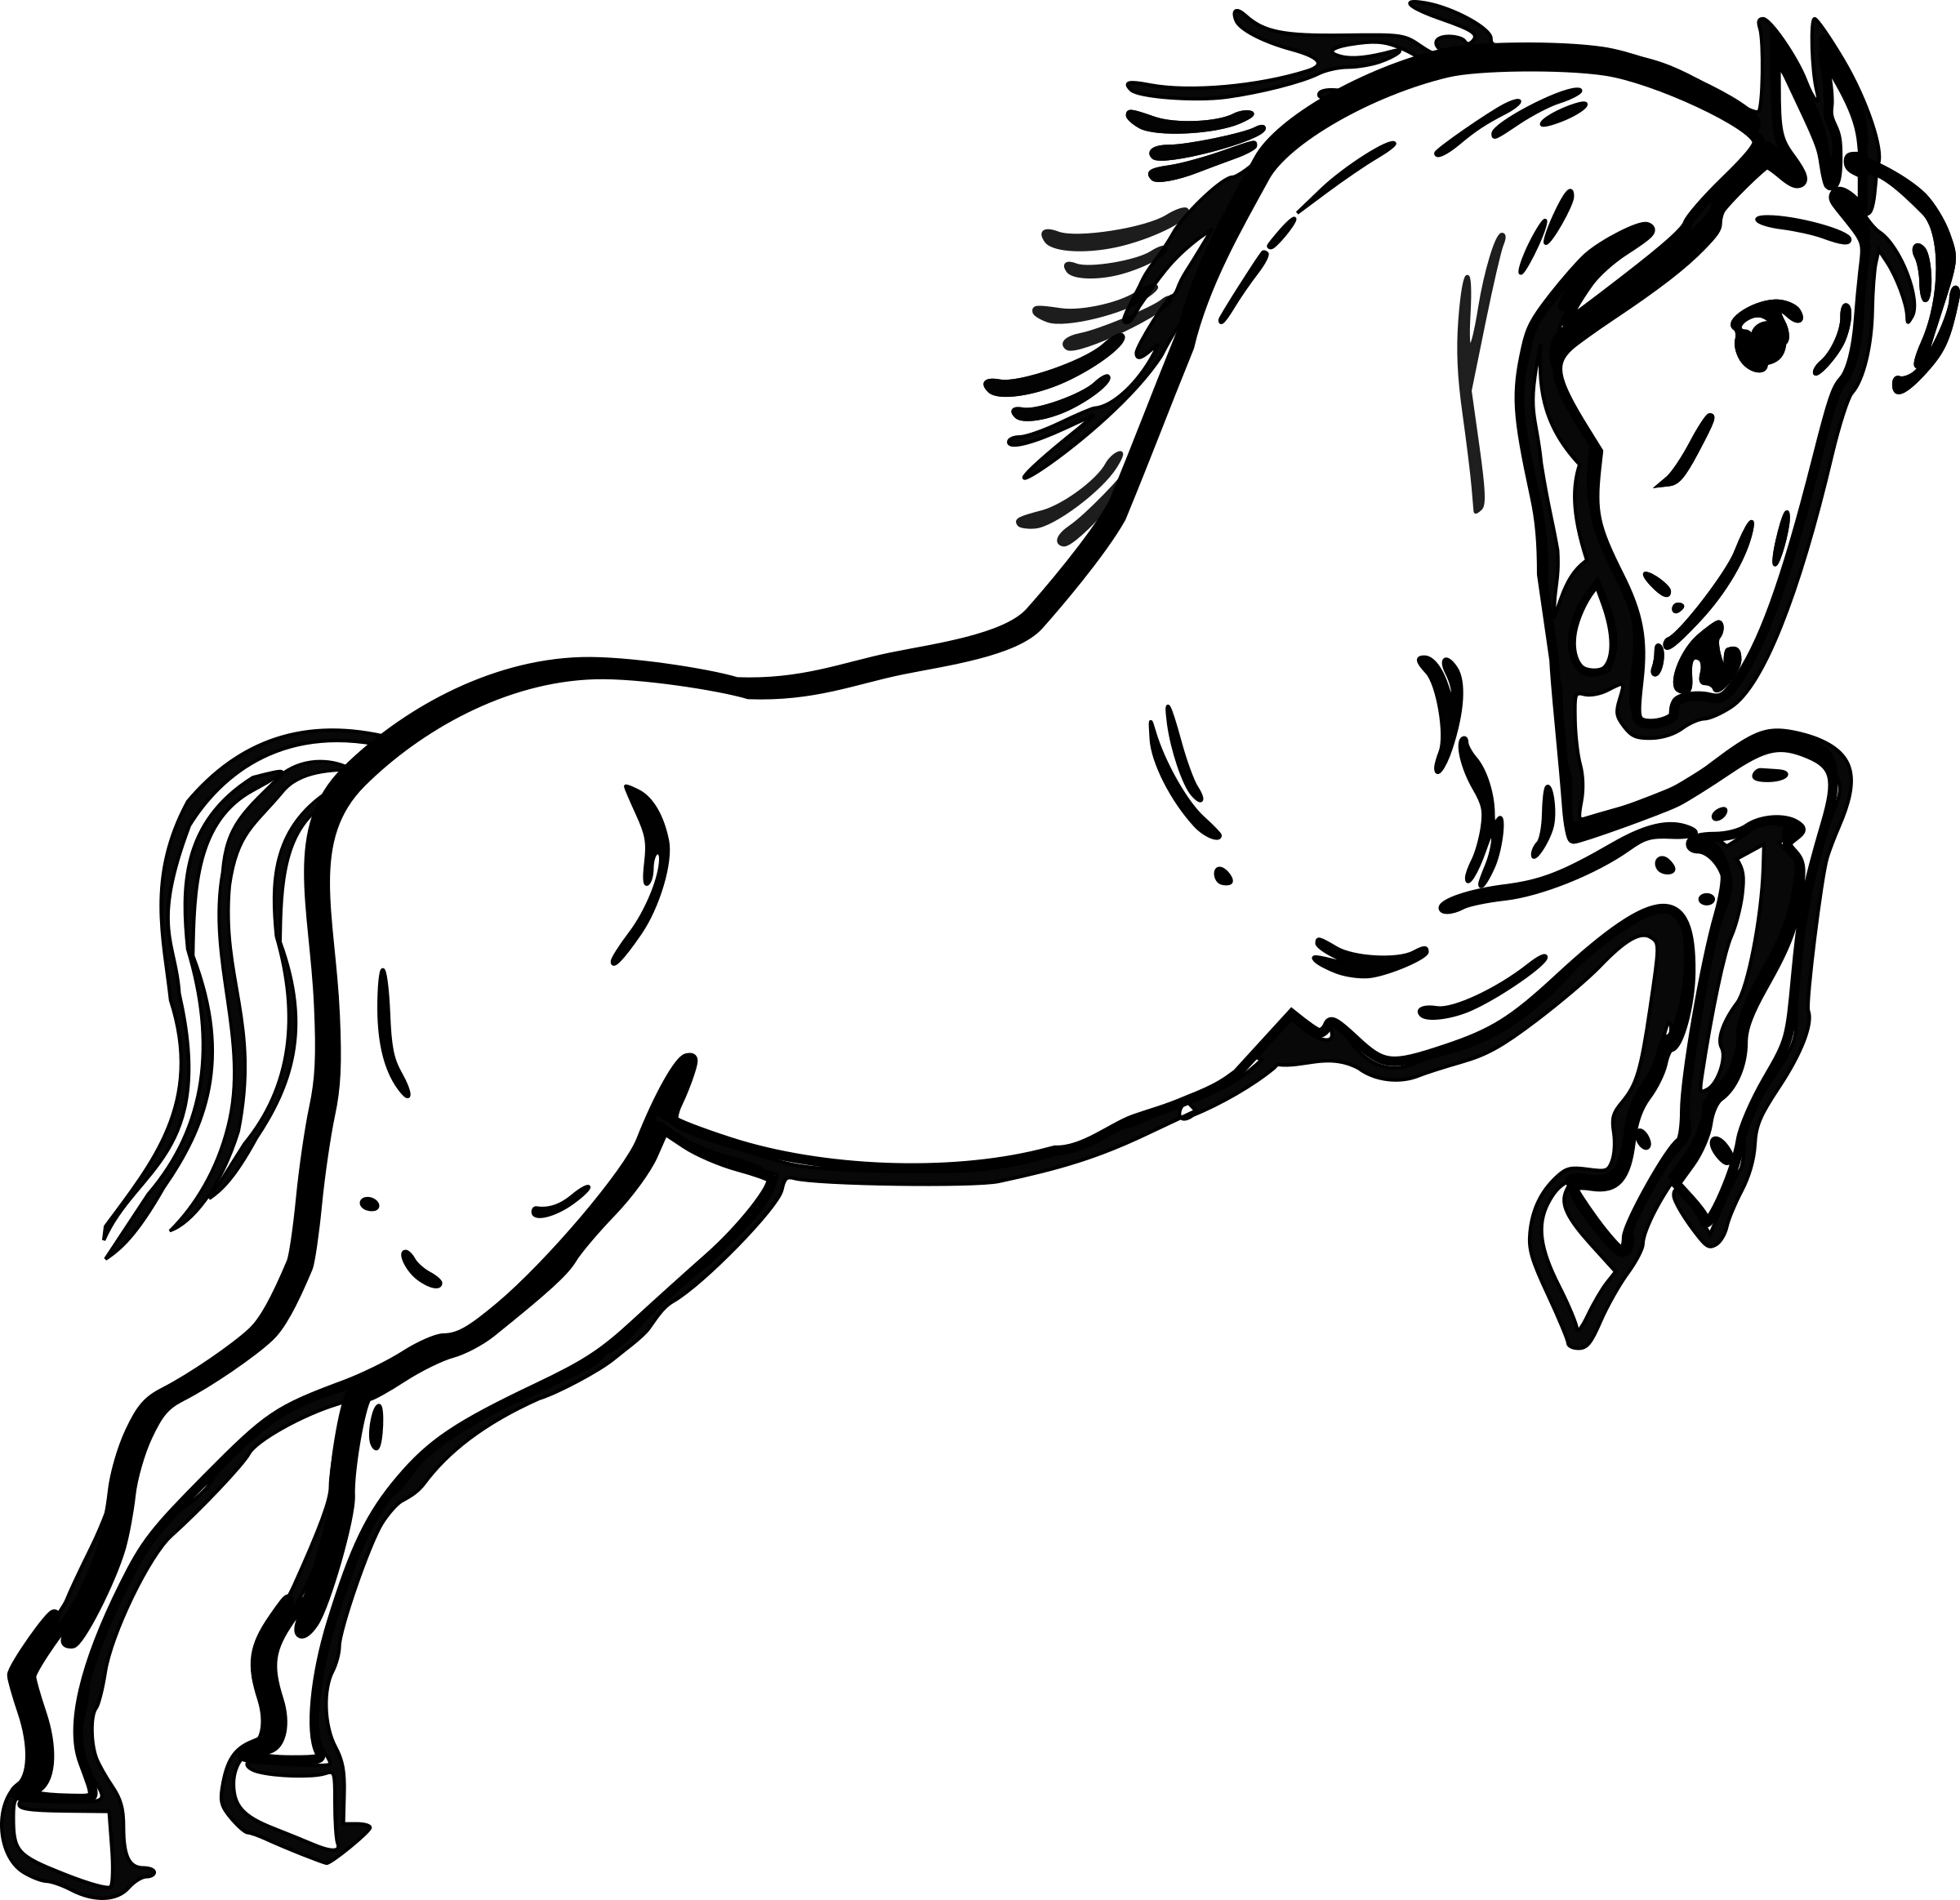 Horse clipart illustration. Jumping clipartmonk free clip